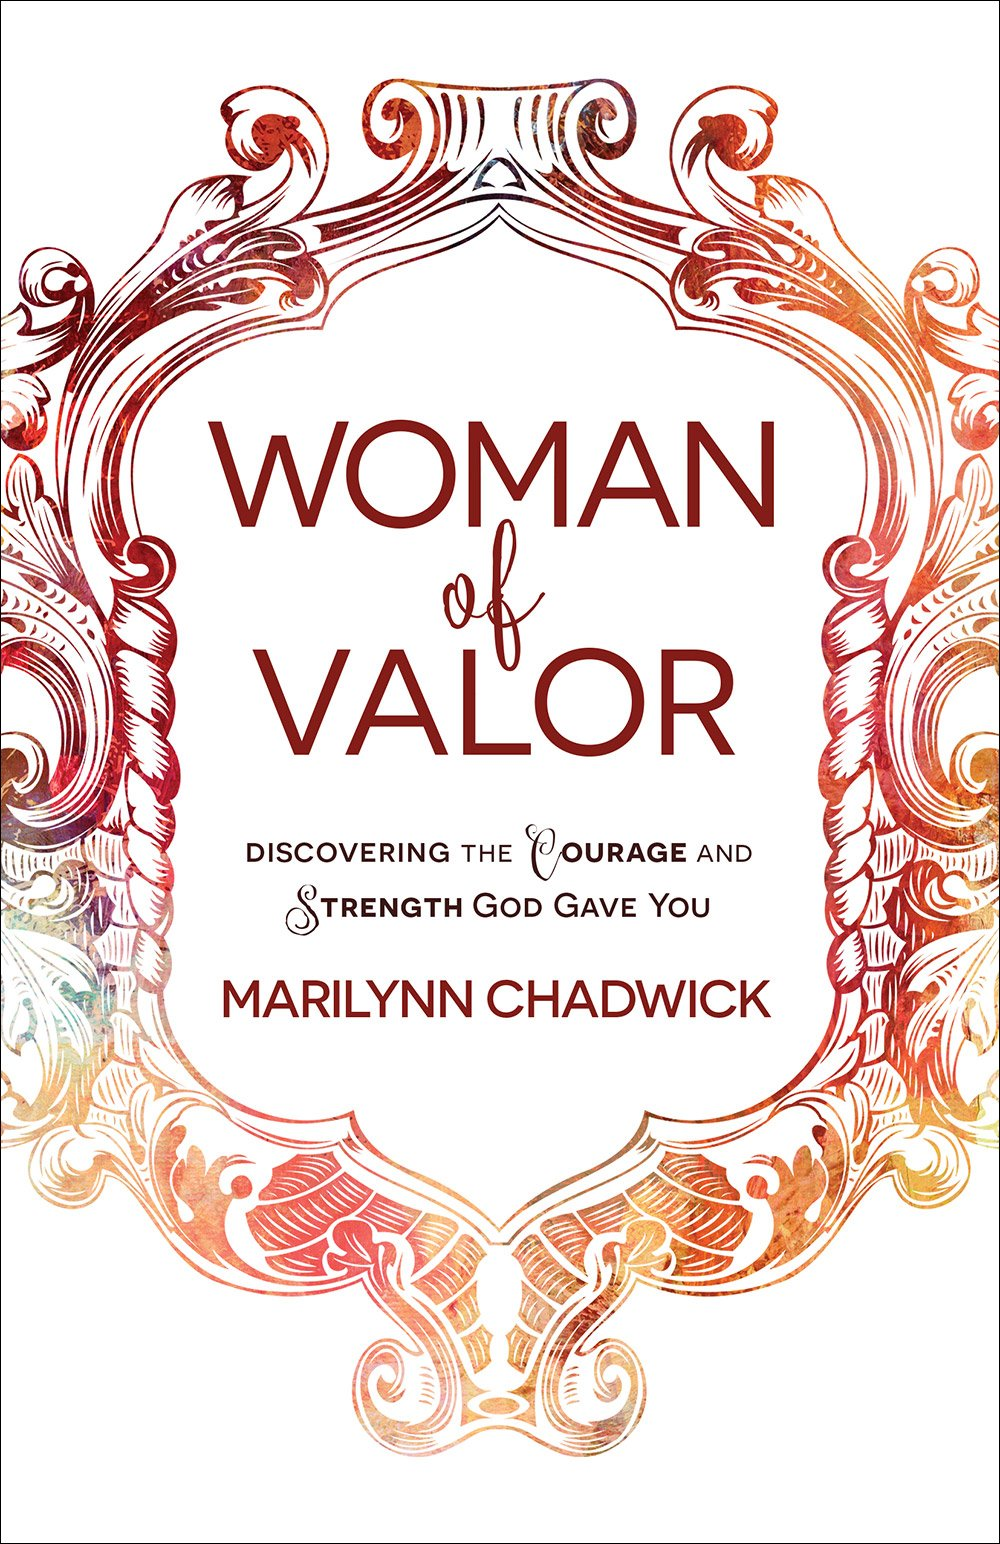 Woman of Valor: Discovering the Courage and Strength God